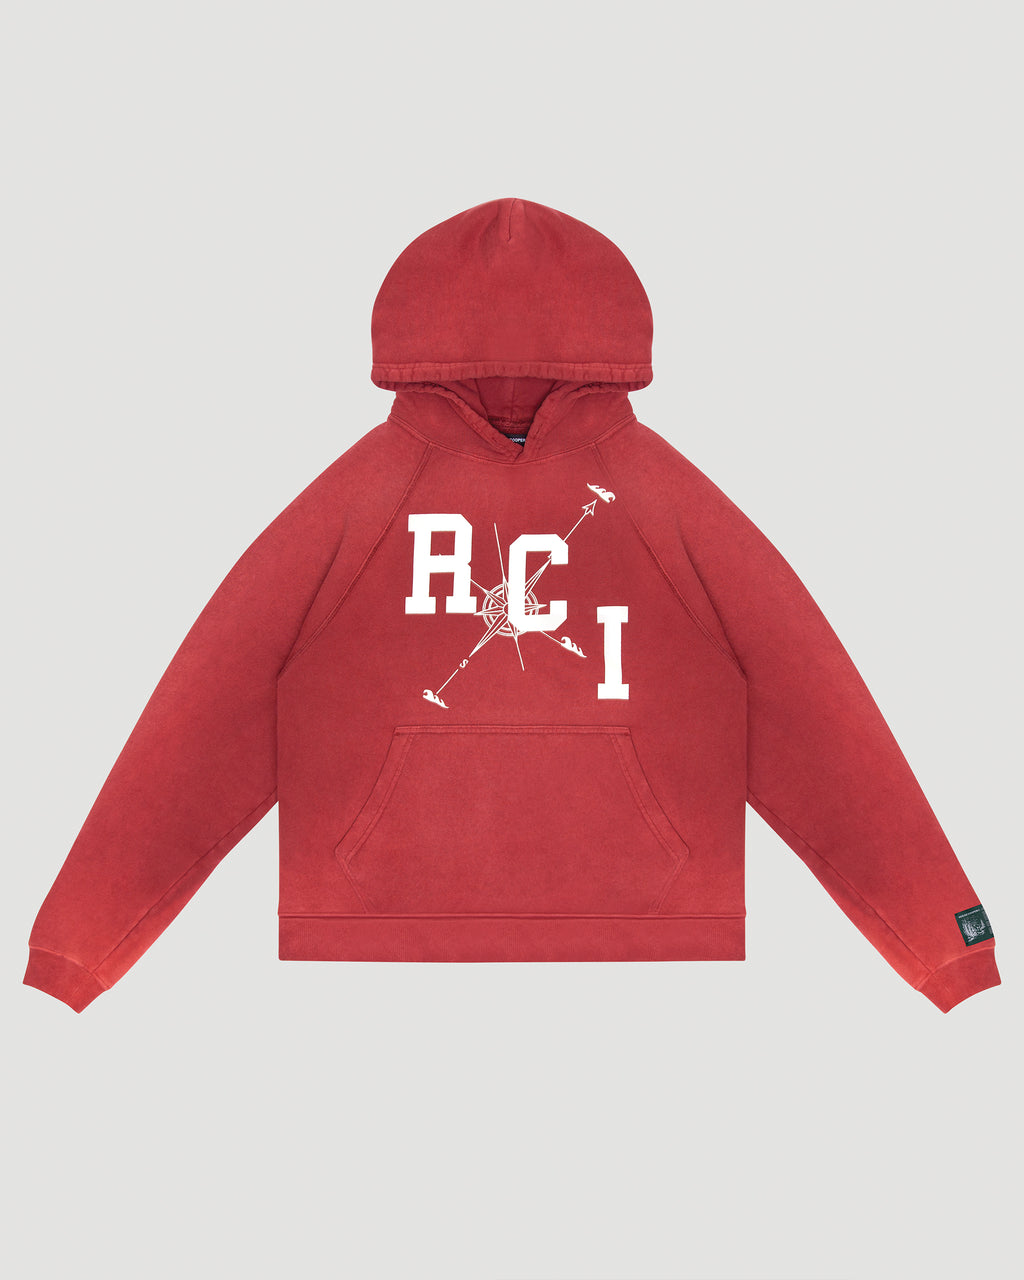 RCI Compass Aged Hooded Sweatshirt in Red